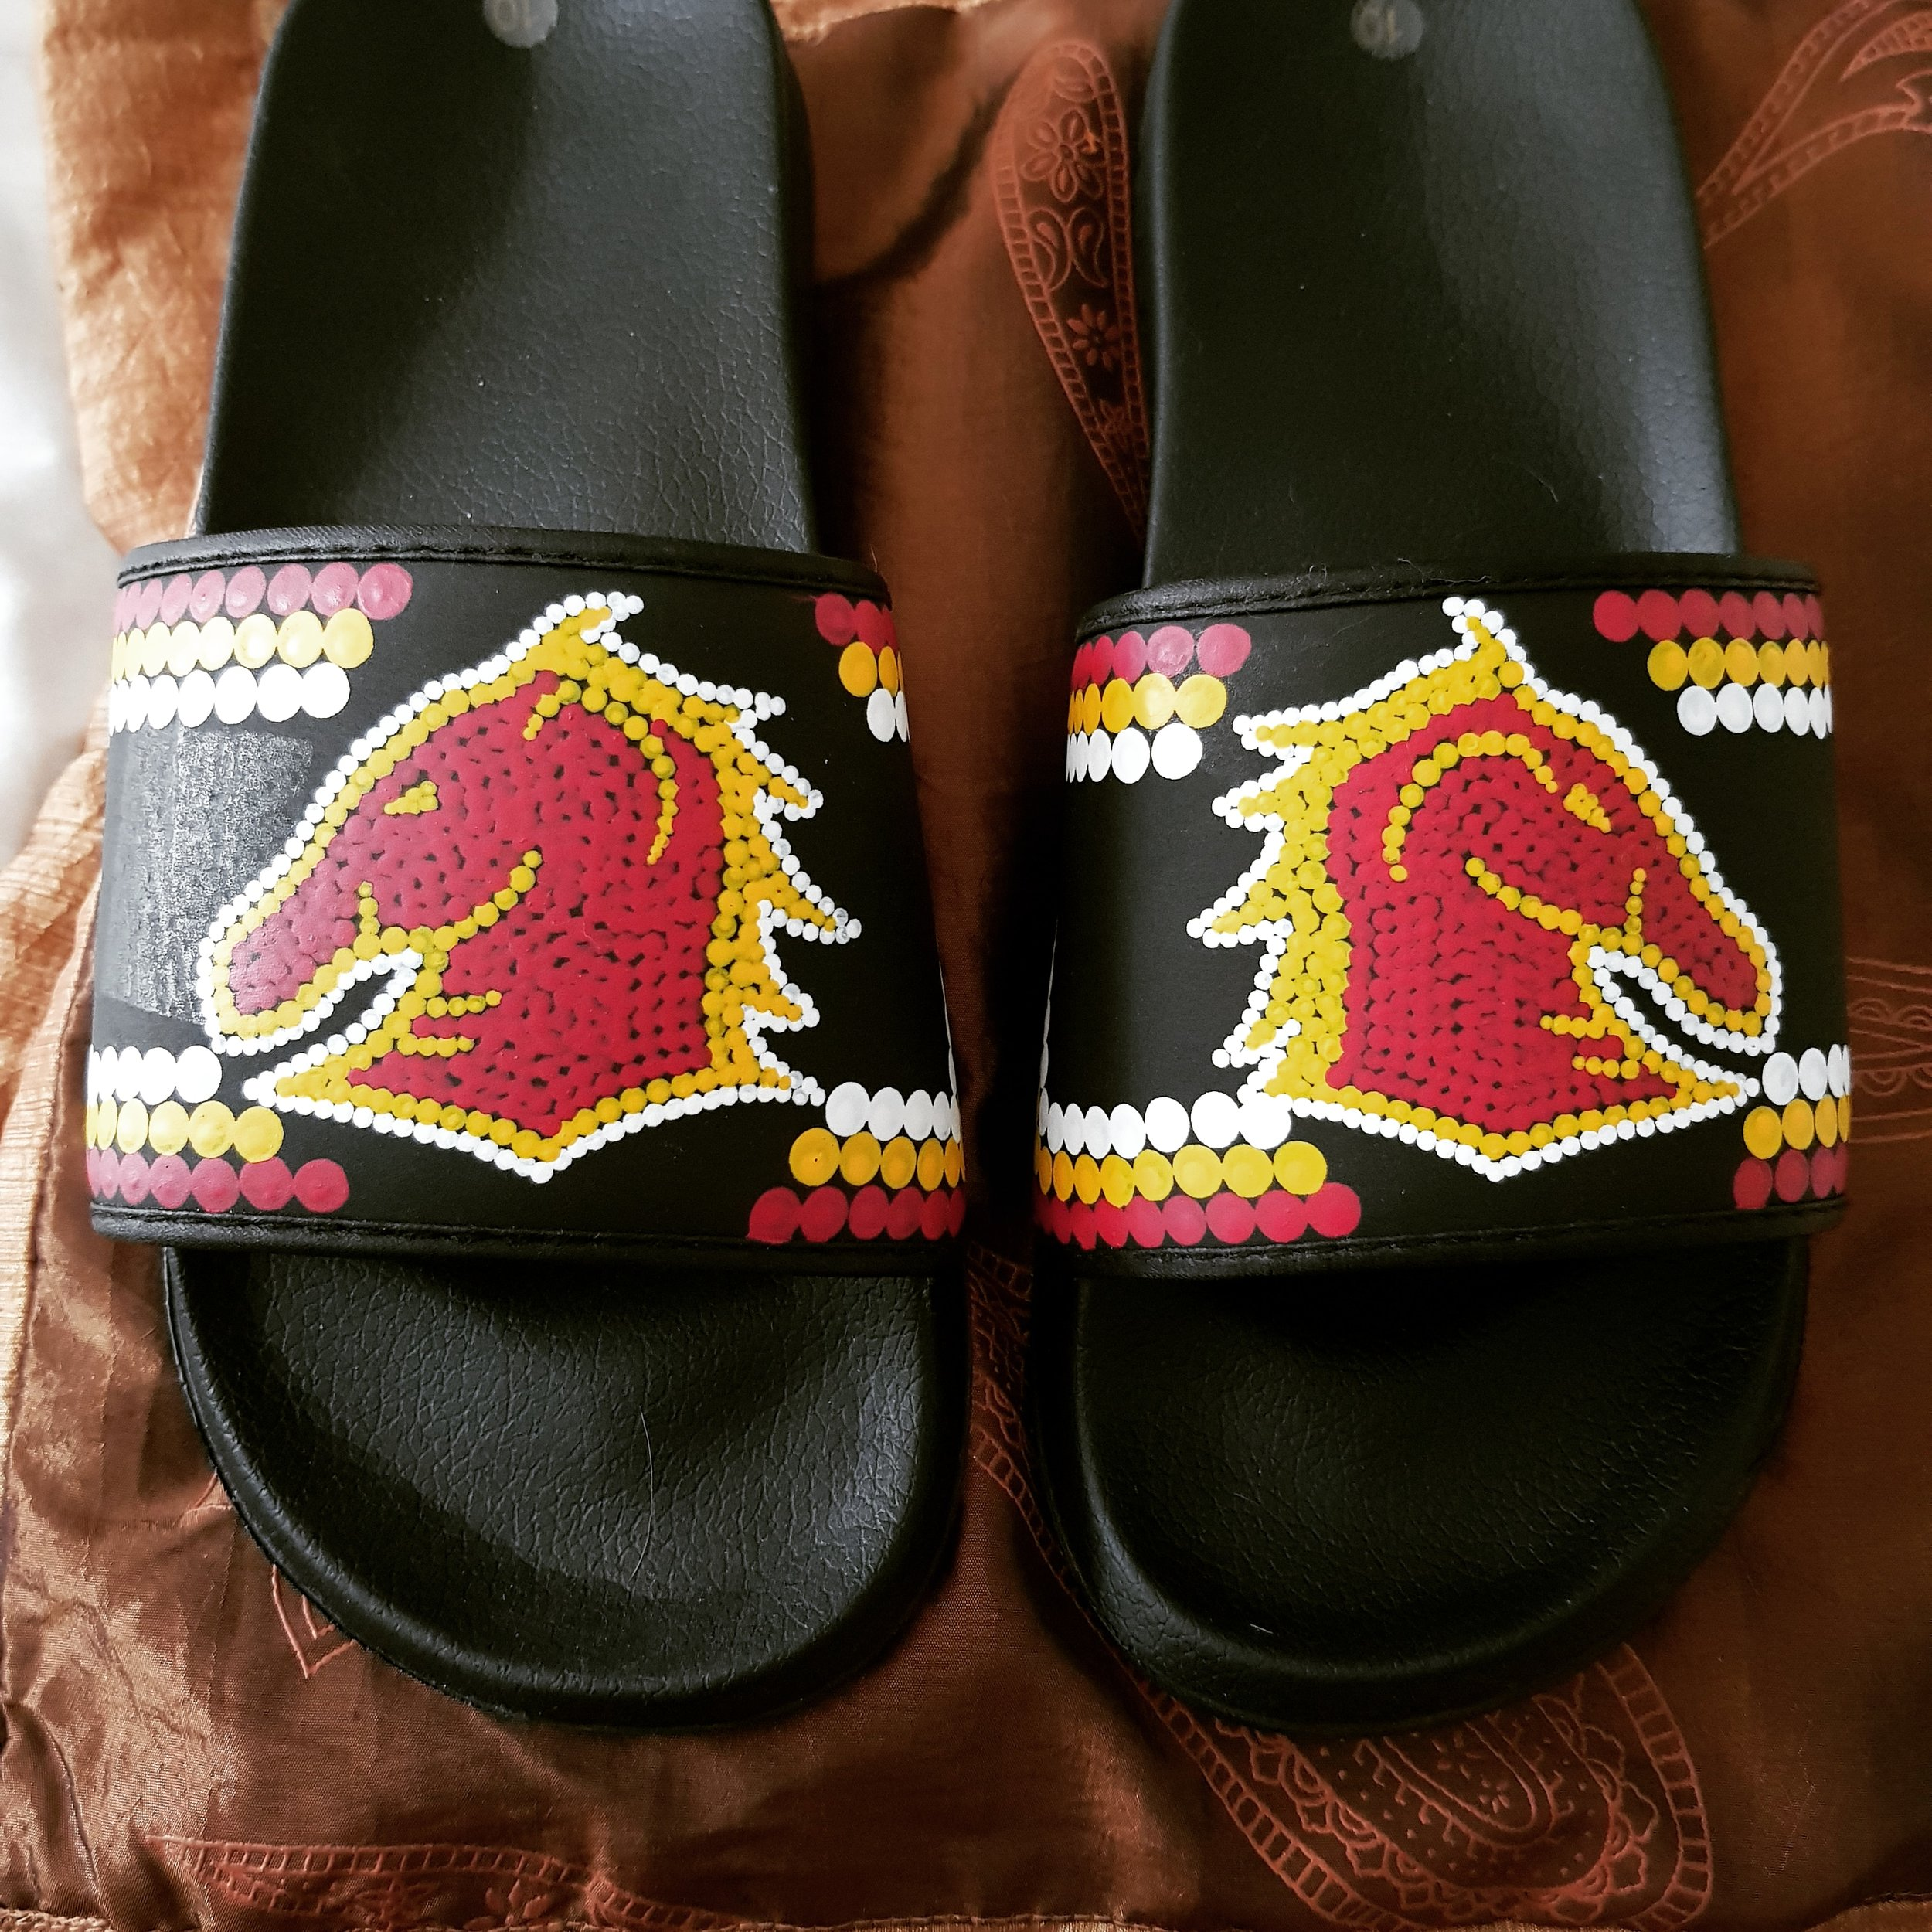 CREED DESIGNS - MINELLE46@OUTLOOK.COMMinelle Creed is an Aboriginal woman descended from the Kalkadoon and Gunggari peoples in Queensland. In her spare time, Minelle has taken up painting, arts and crafts. Minelle likes to paint contemporary Aboriginal designs on shoes, handbags and guitars. Minelle also likes creating jewellery using emu feathers, crystals or glass beads and native seeds.